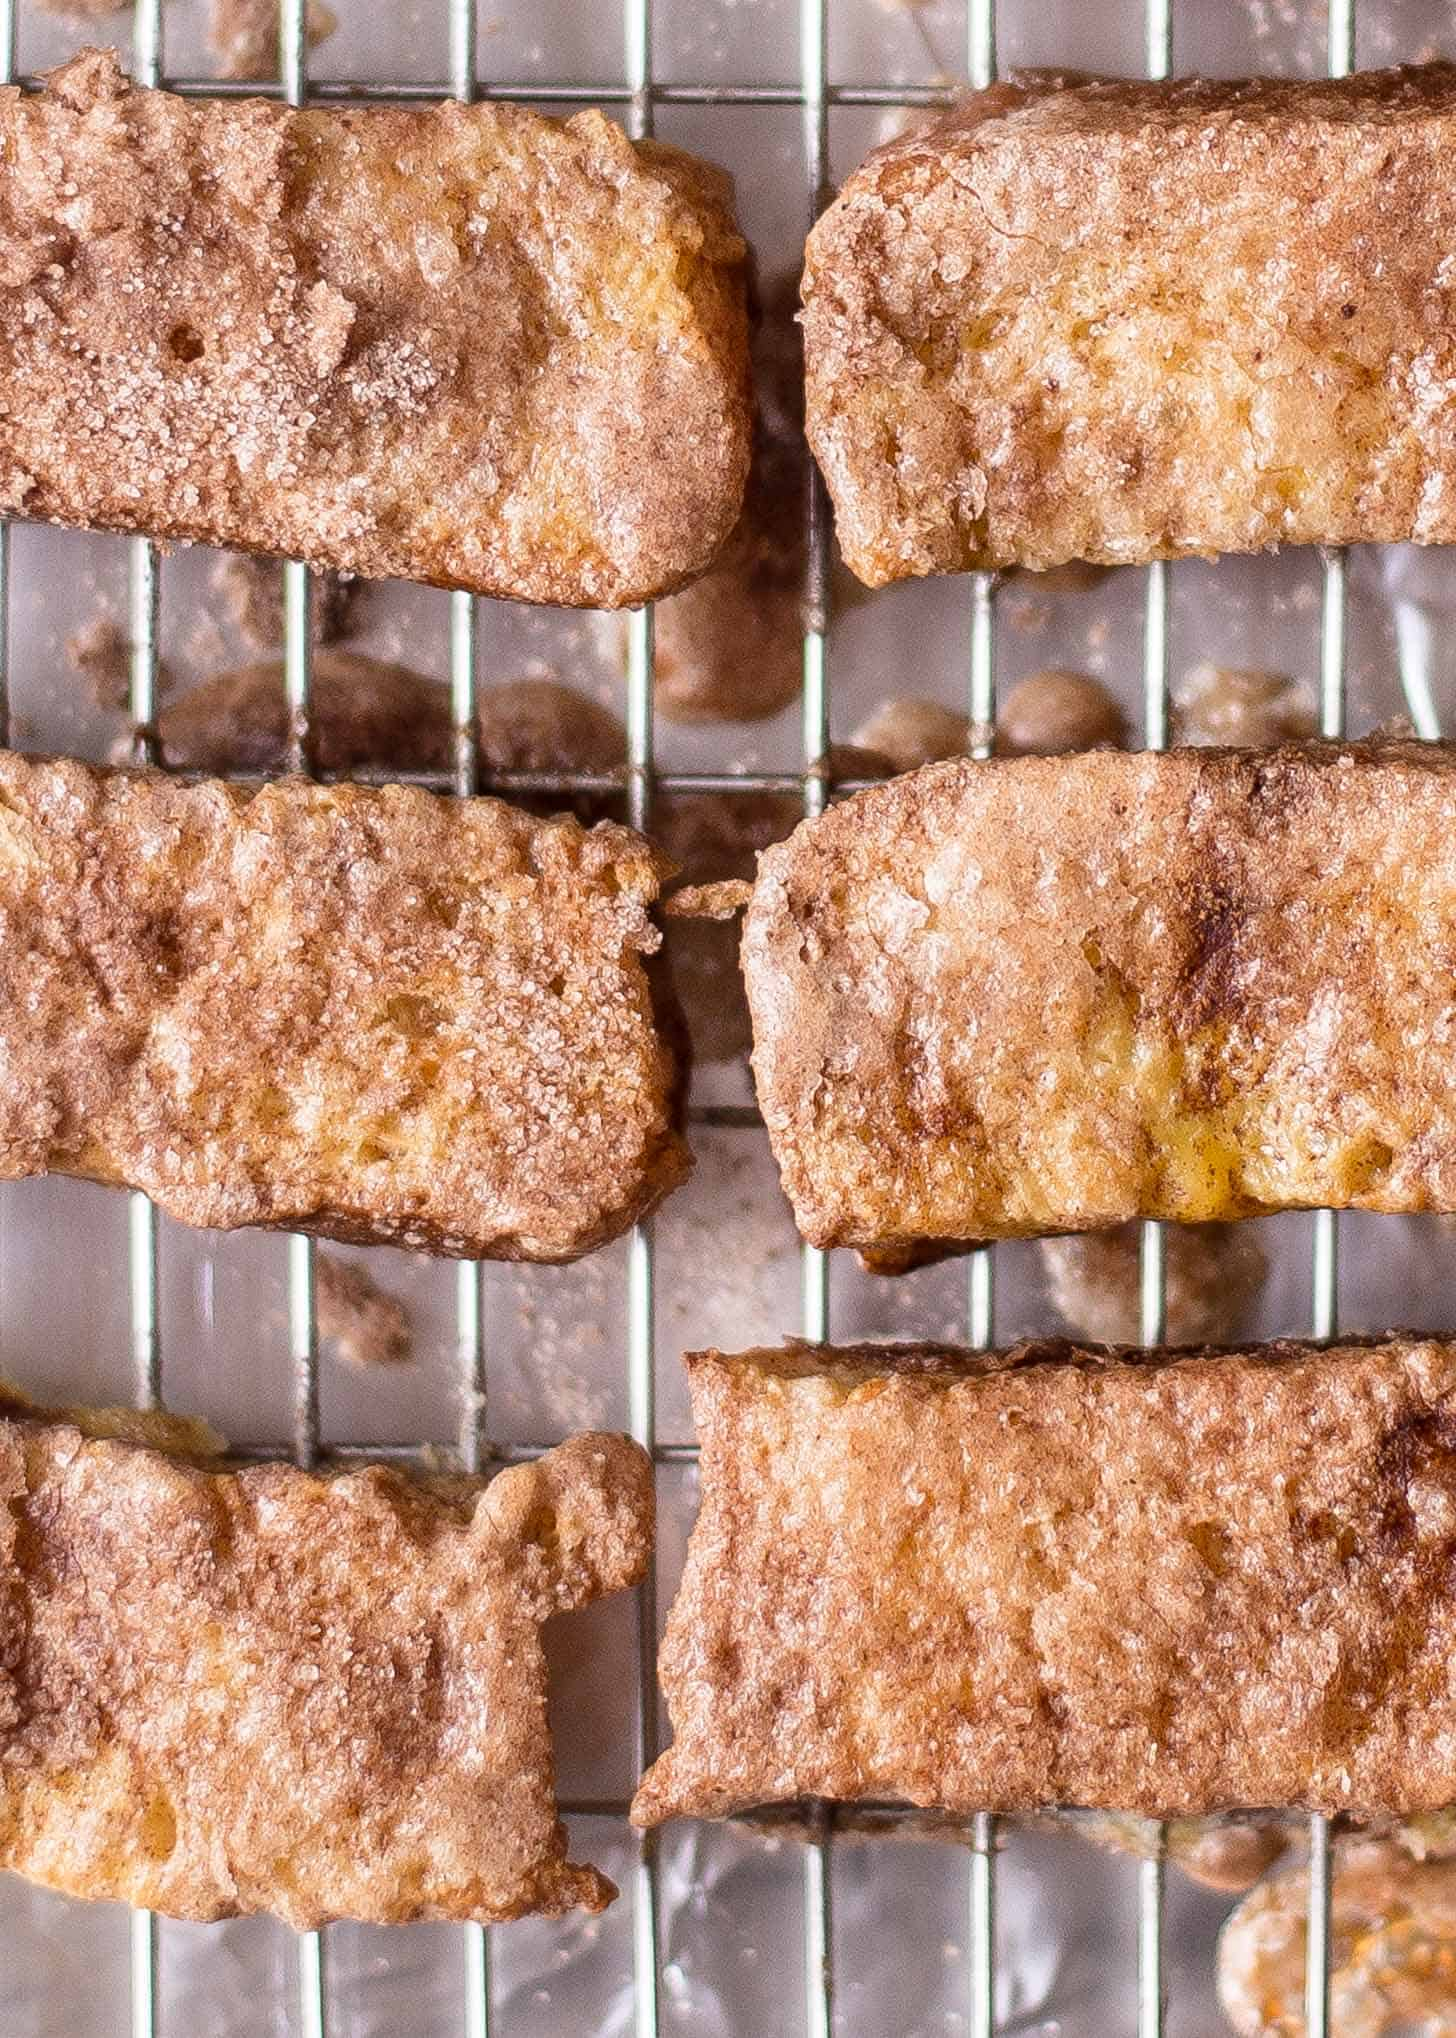 Baked Cinnamon French Toast Sticks on a cooling rack